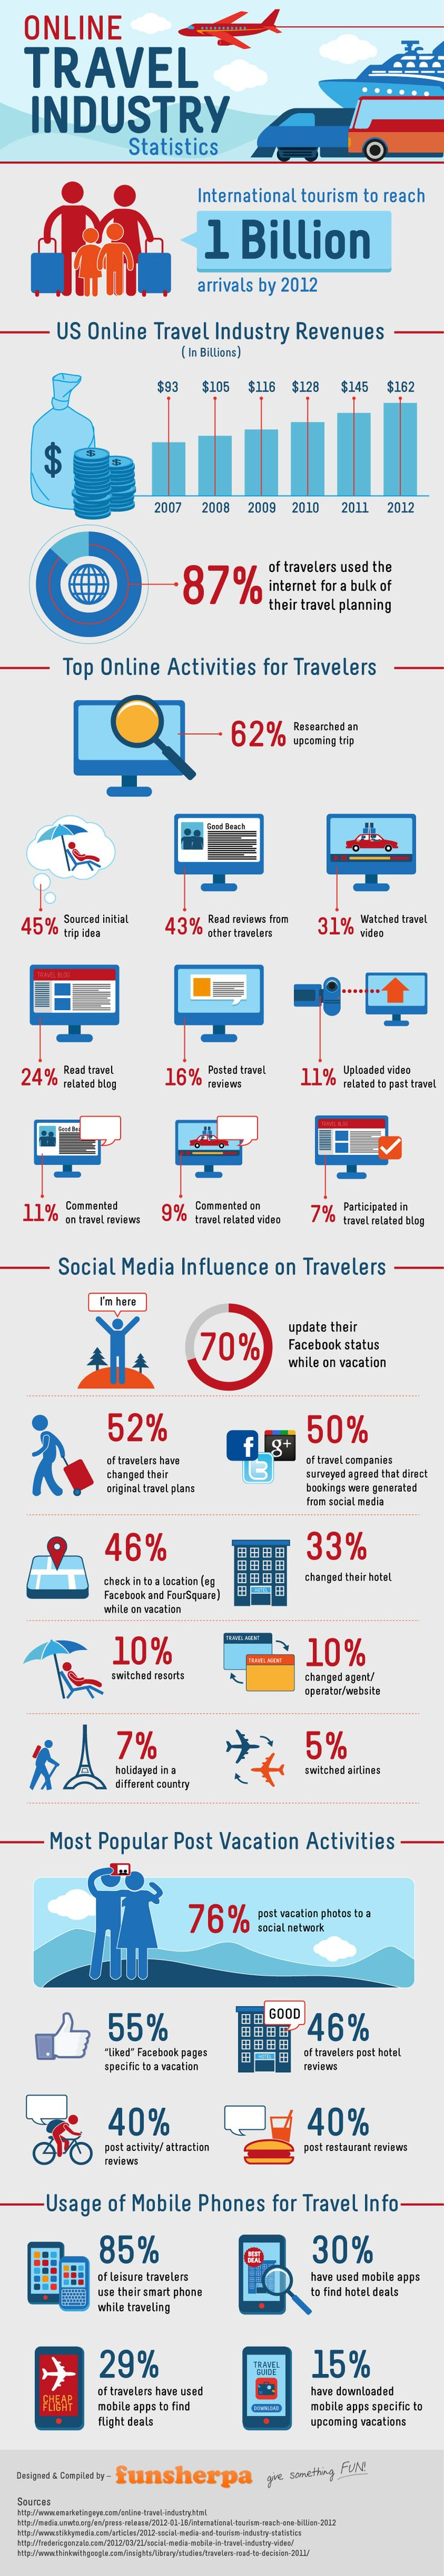 The travel industry and online marketing #infographic. 62% researched an upcoming trip online. 70% update their facebook status while on vacation ! And more...